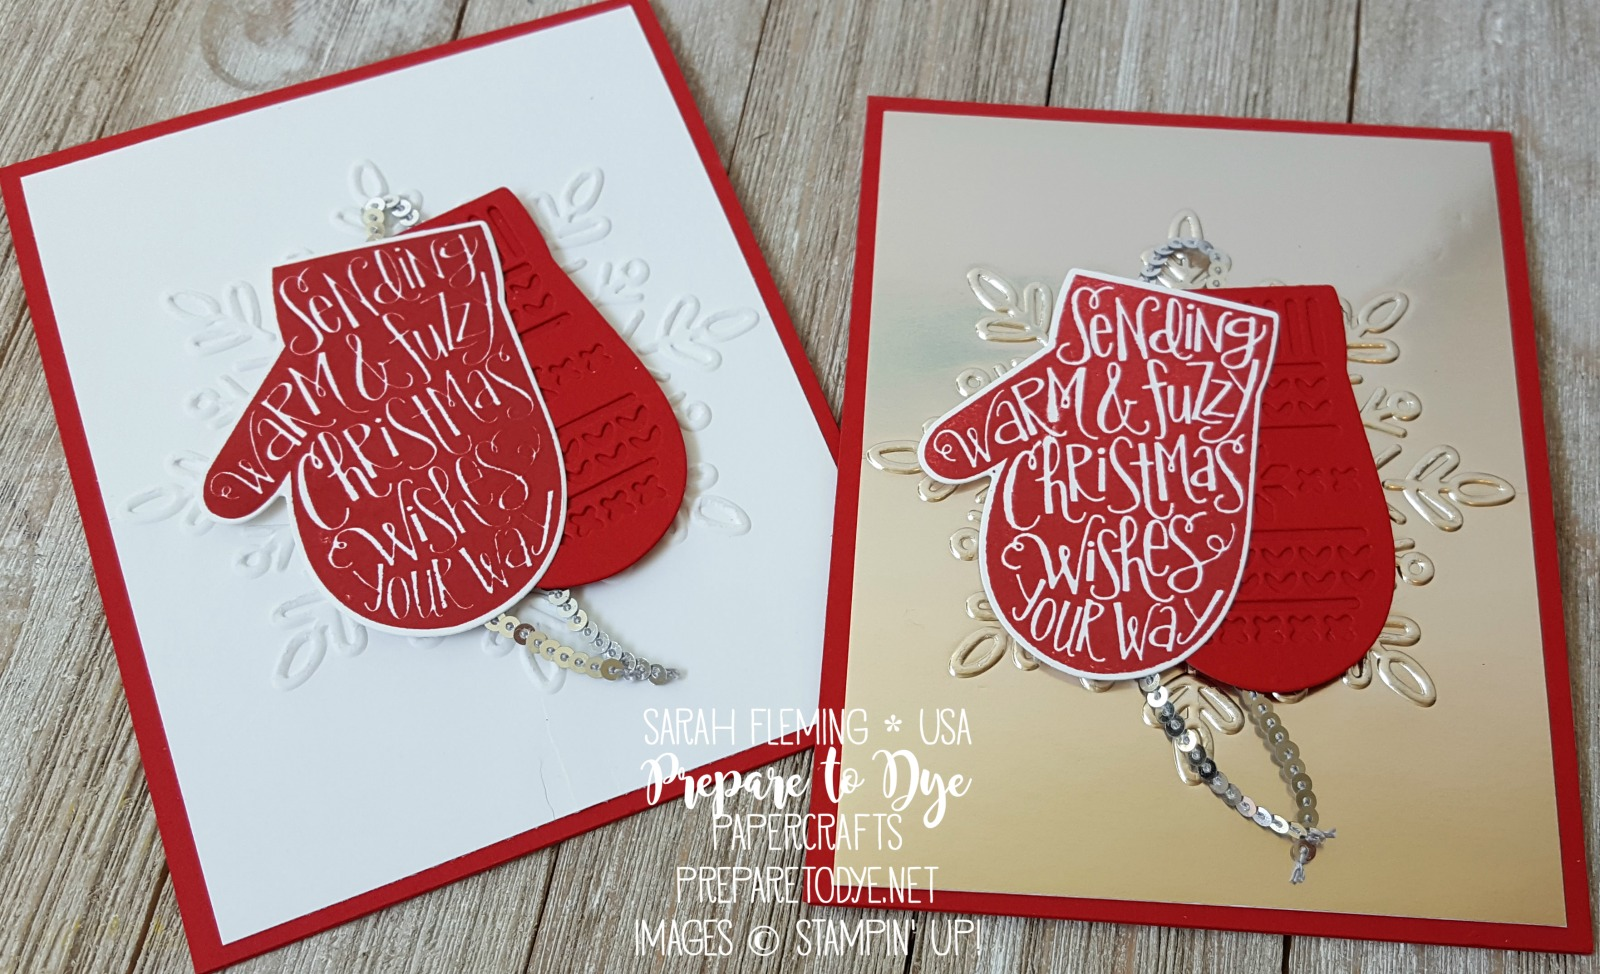 Stampin' Up! Smitten Mittens bundle, Many Mittens framelits, Winter Wonder embossing folder, Champagne Foil Sheets, 2017 Holiday Catalog - Sarah Fleming - Prepare to Dye Papercrafts